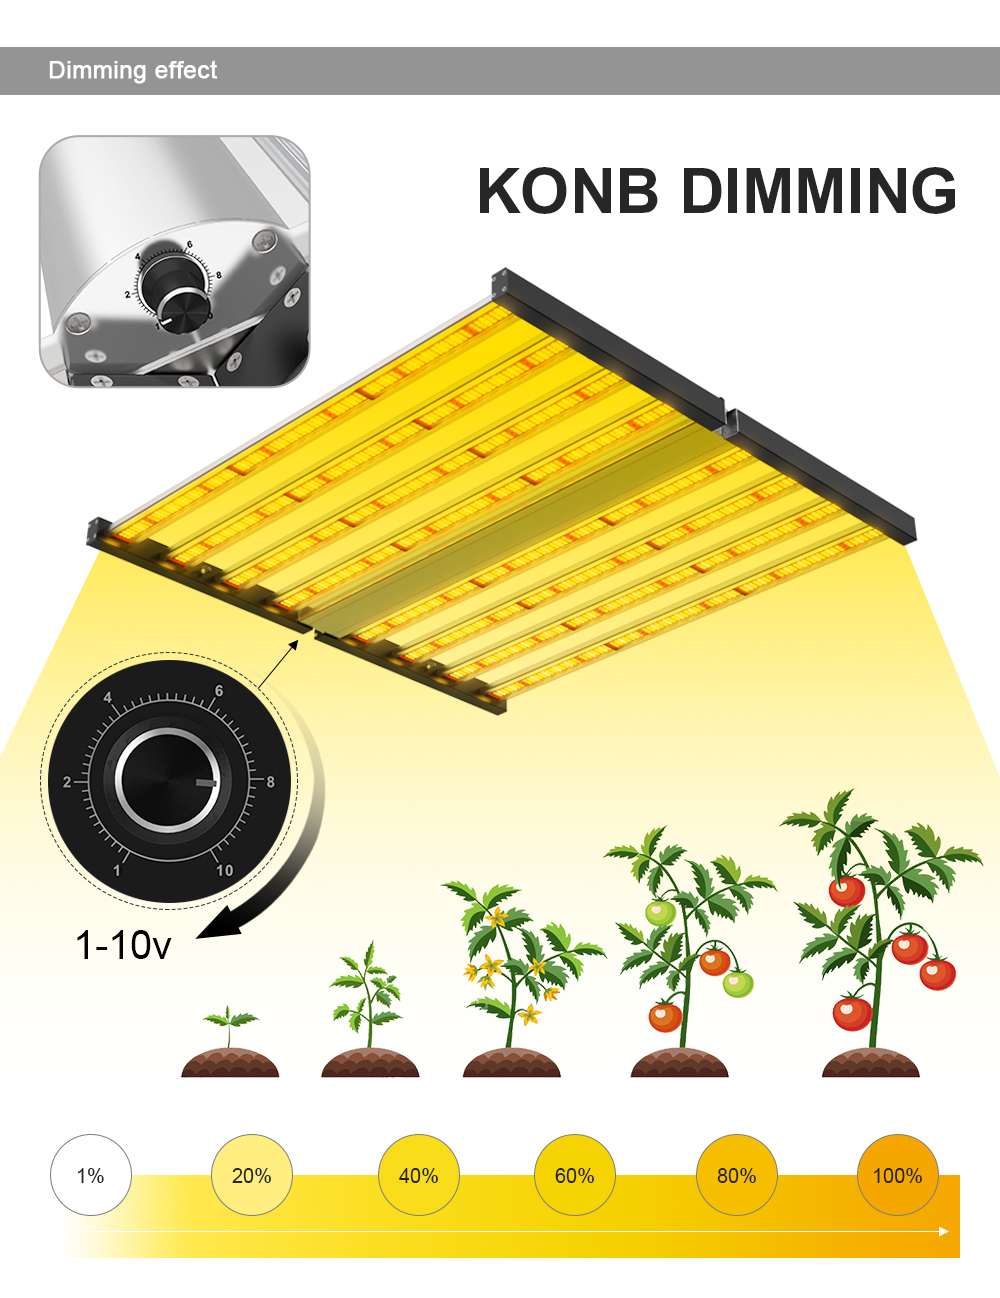 640w led grow light (9)